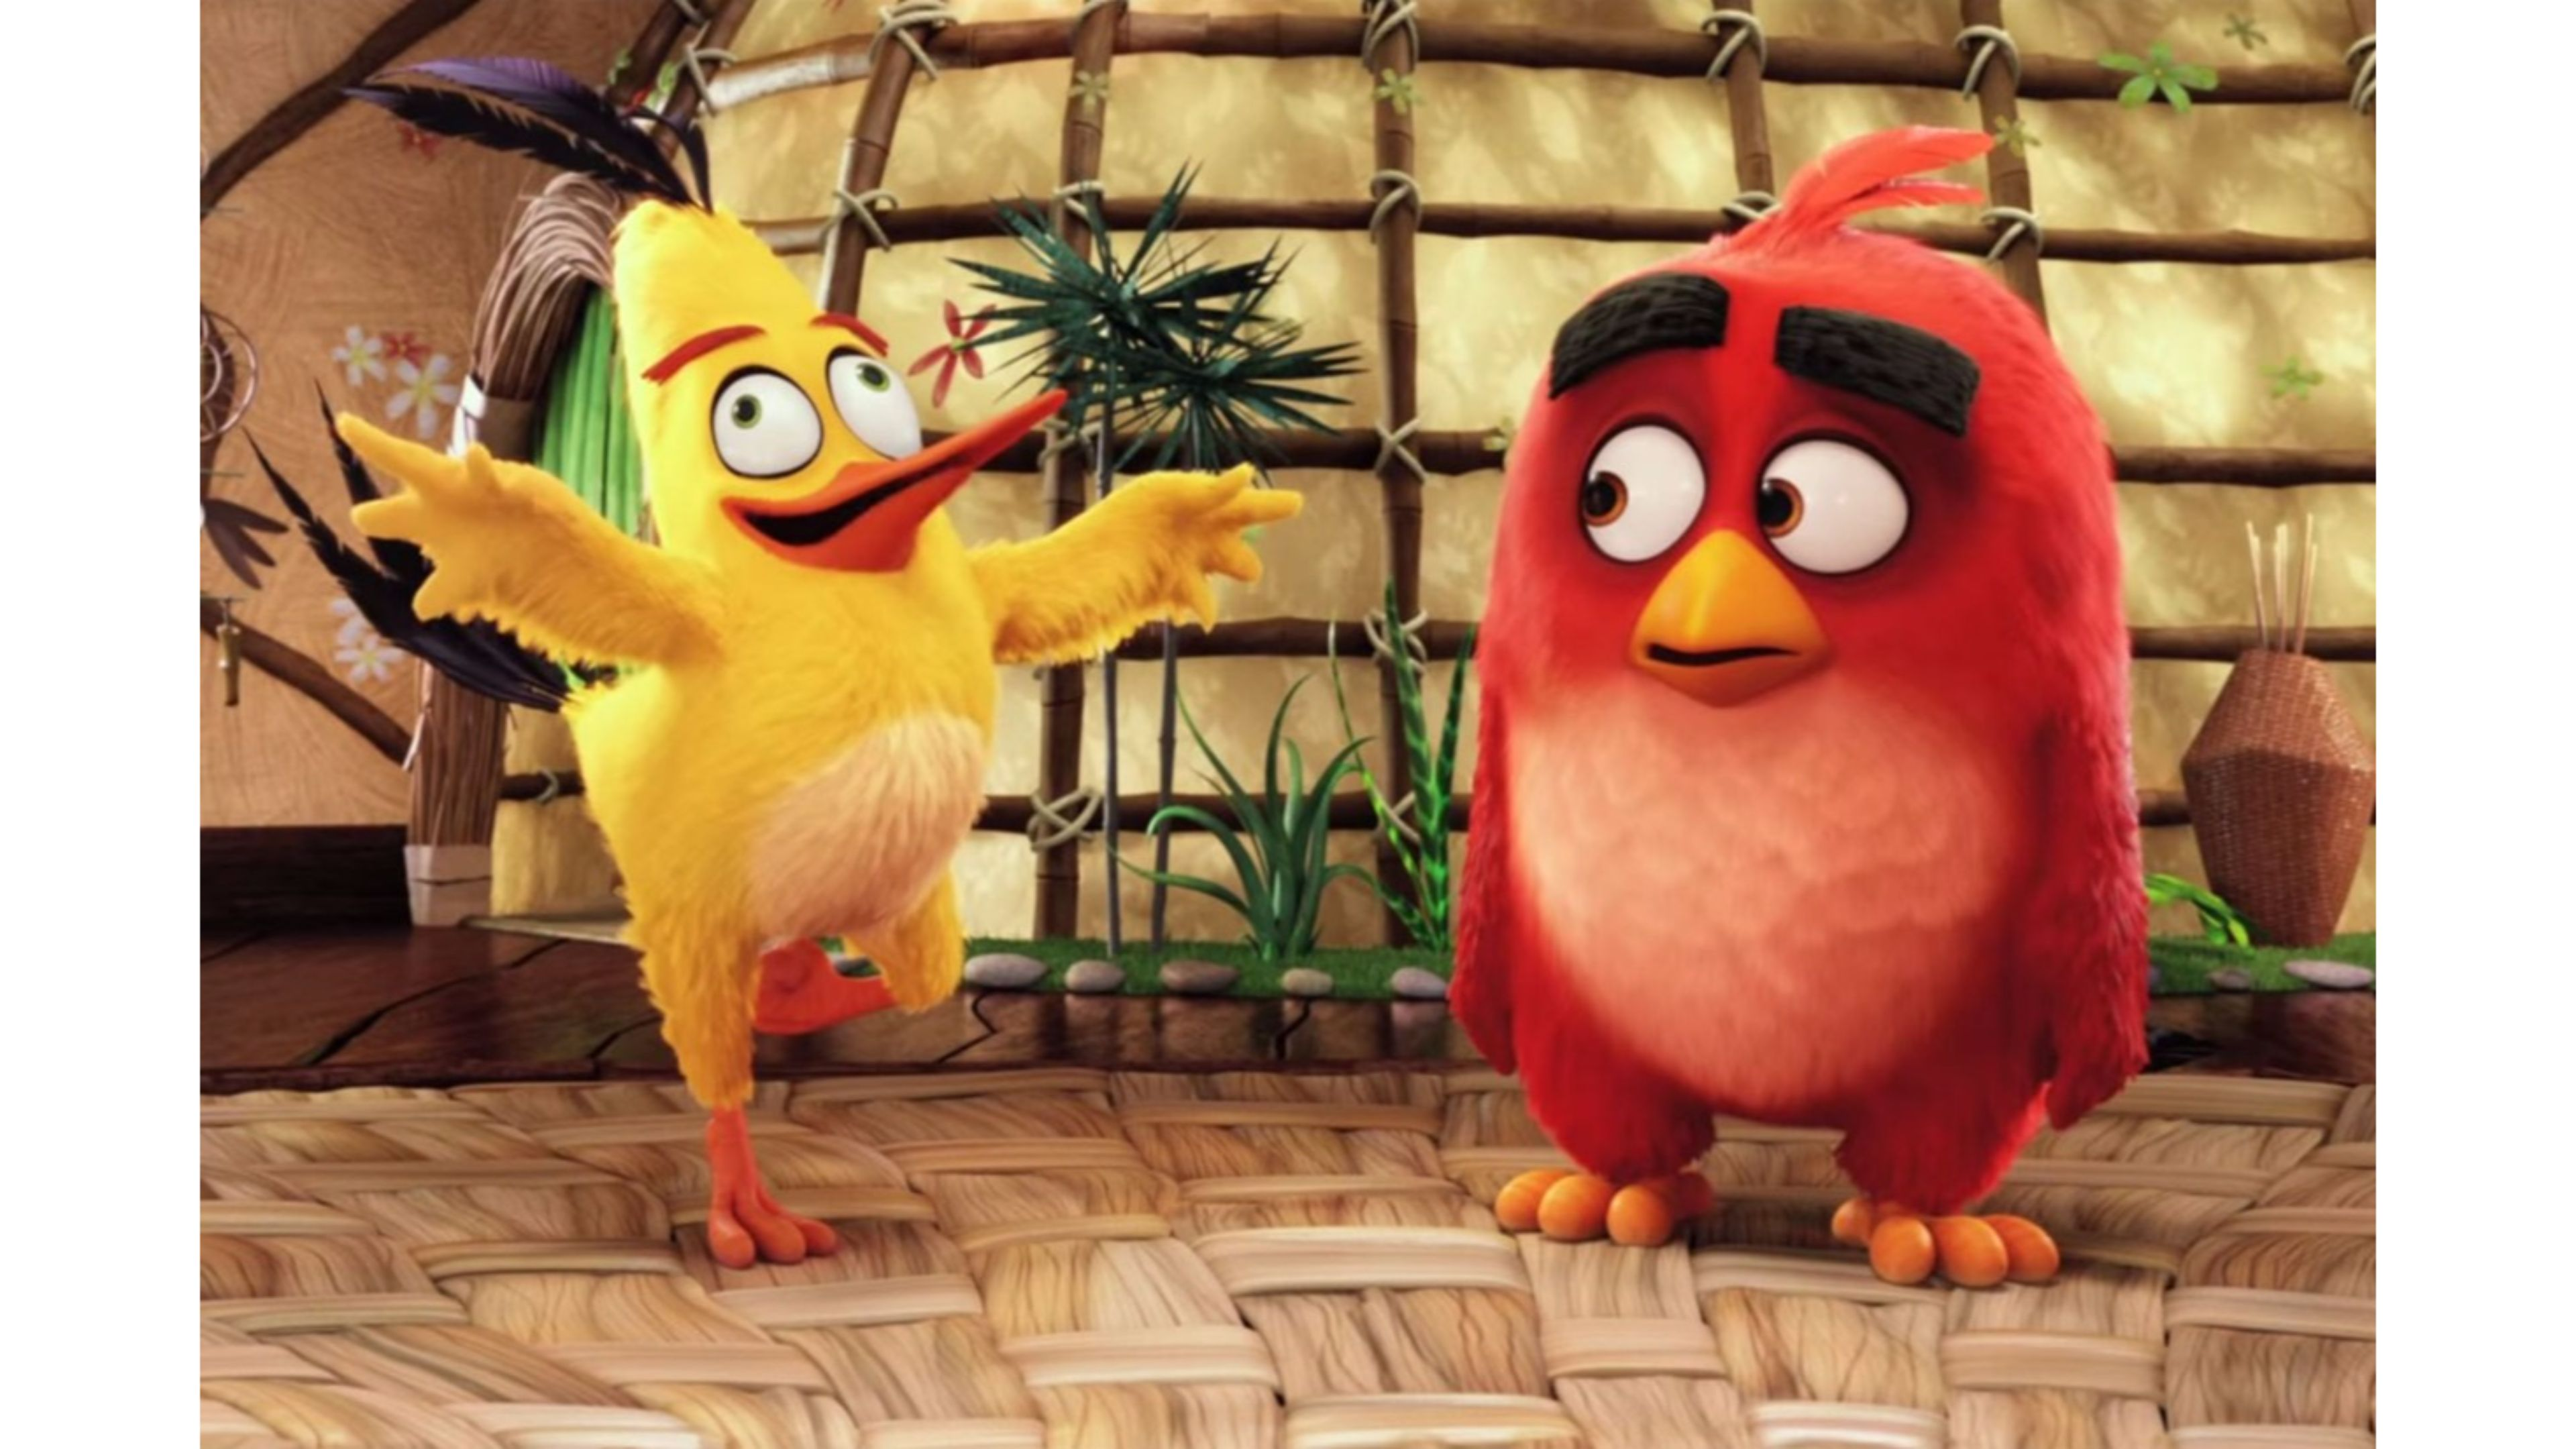 Trending The Angry Birds Movie Wallpaper - Chuck Angry Birds Voice , HD Wallpaper & Backgrounds